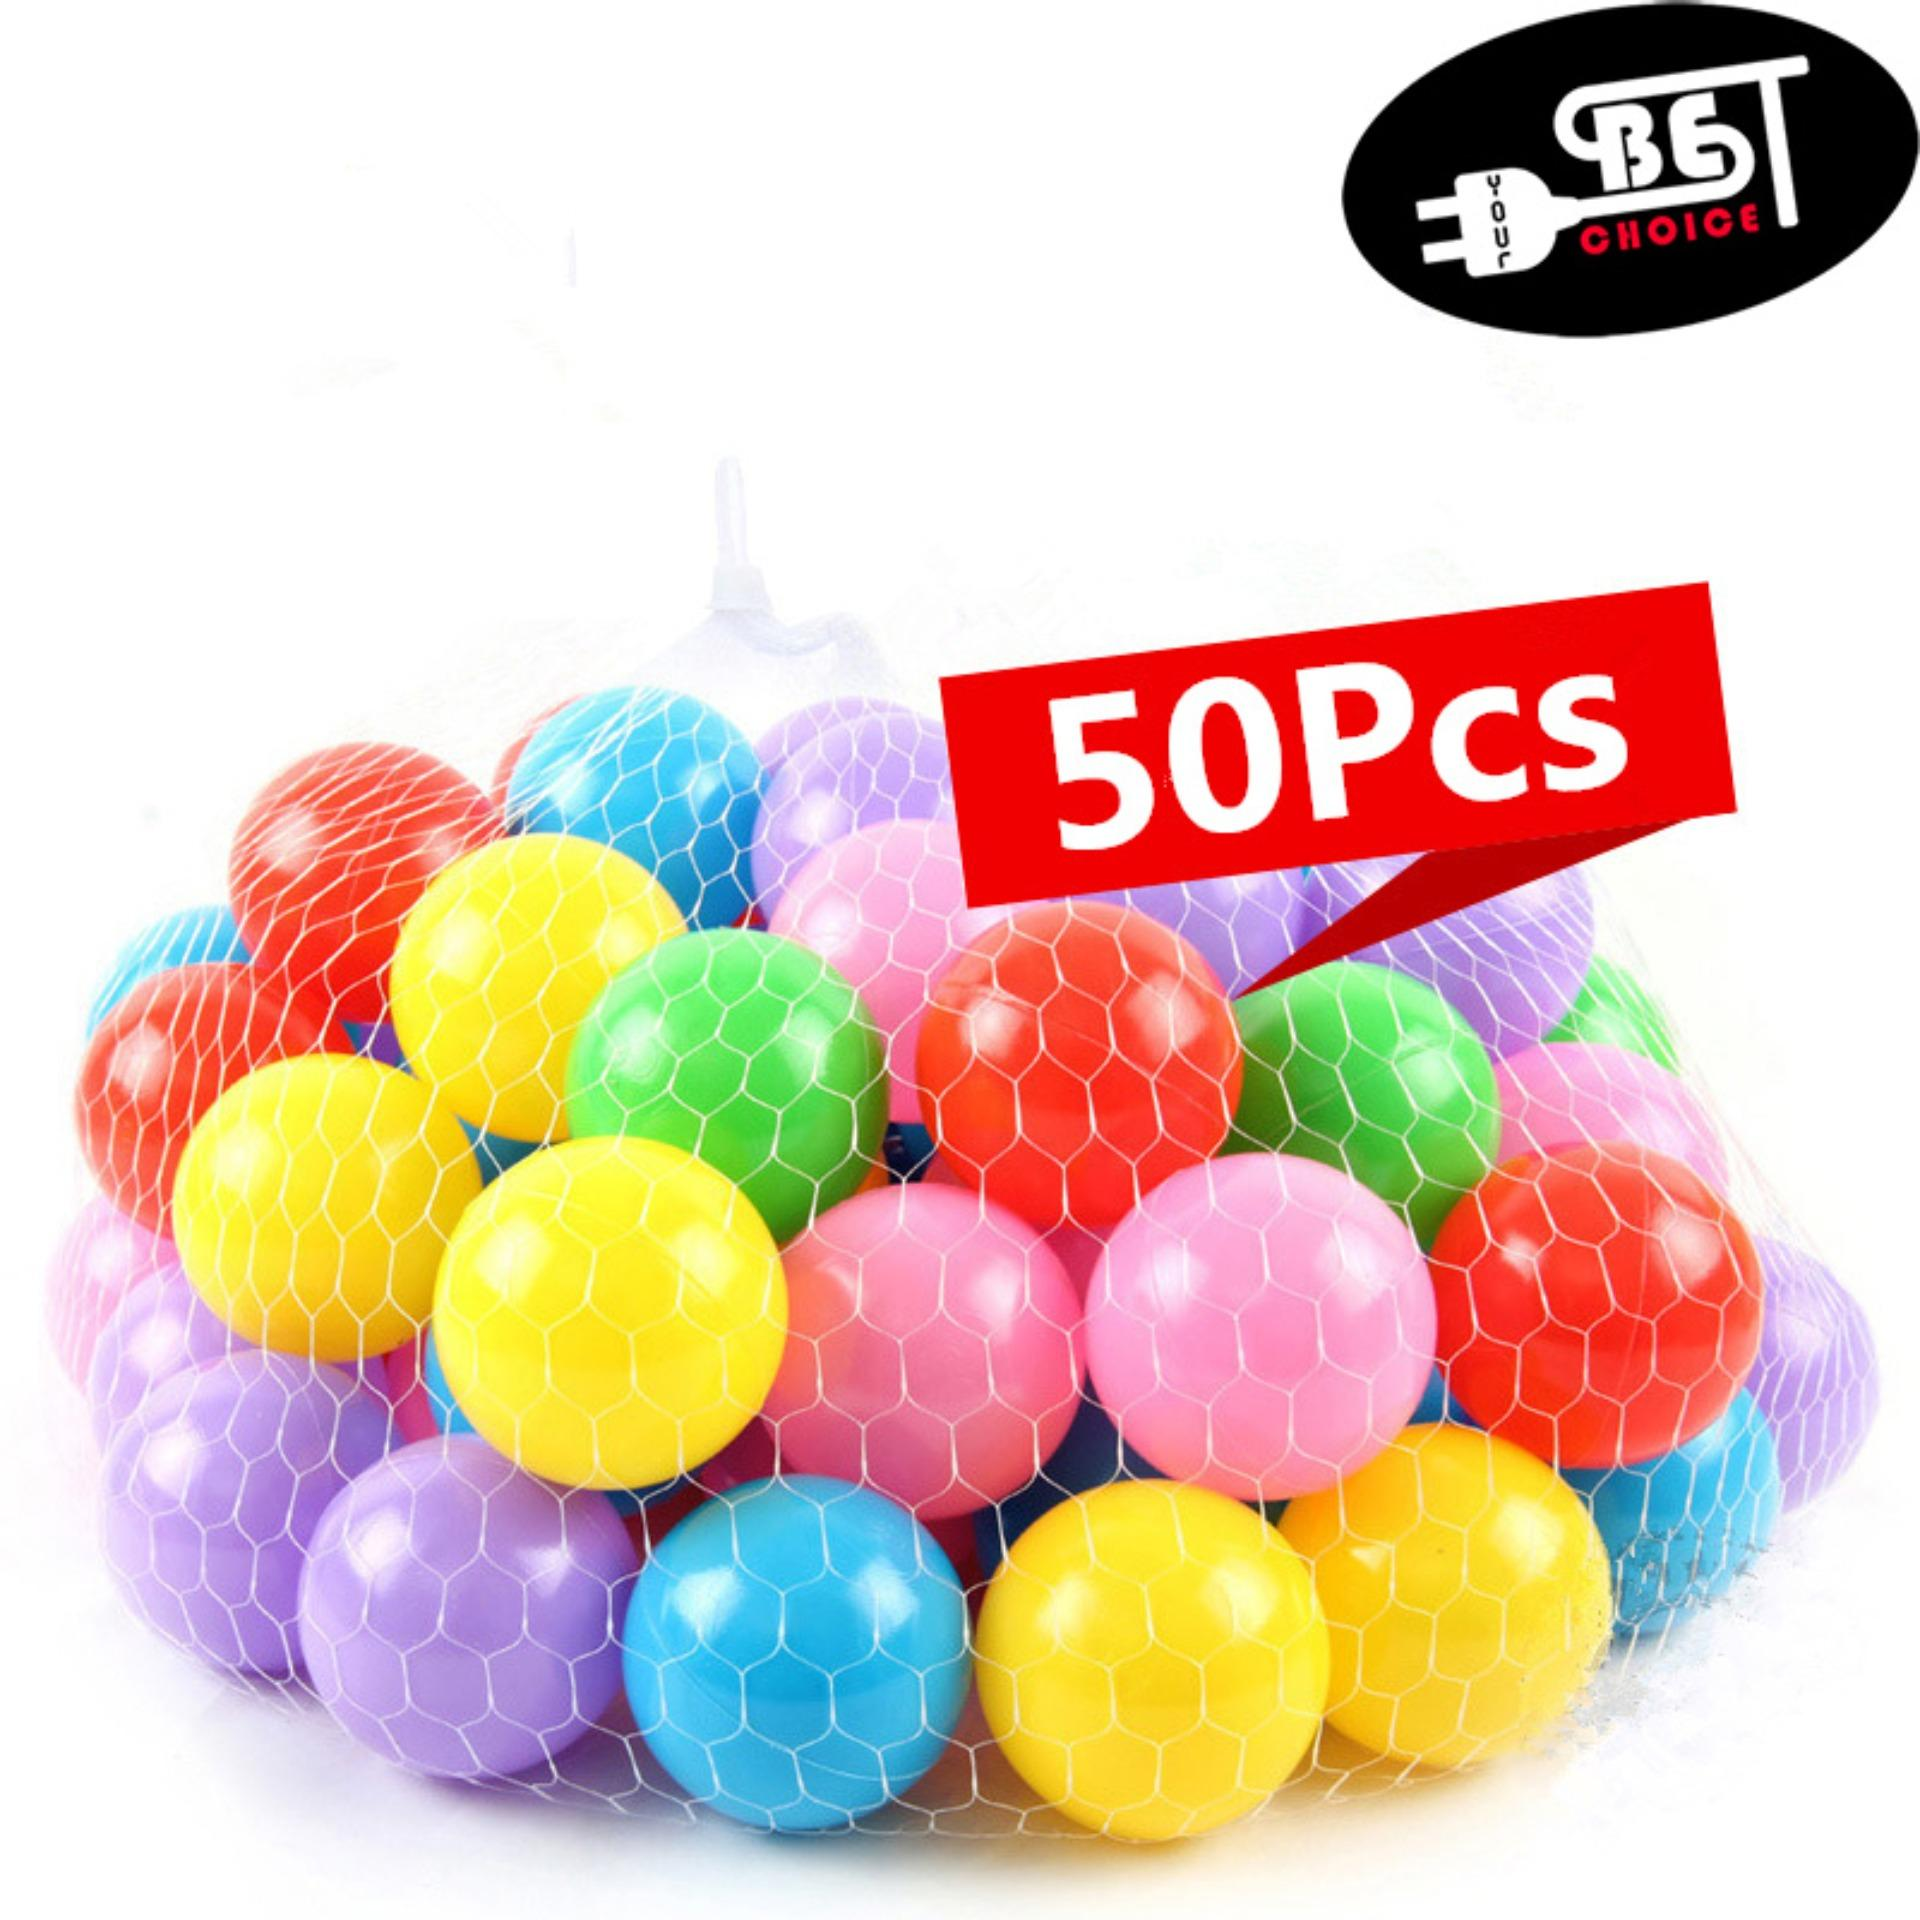 Baby Sphère baby balls for sale - toy balls online brands, prices & reviews in